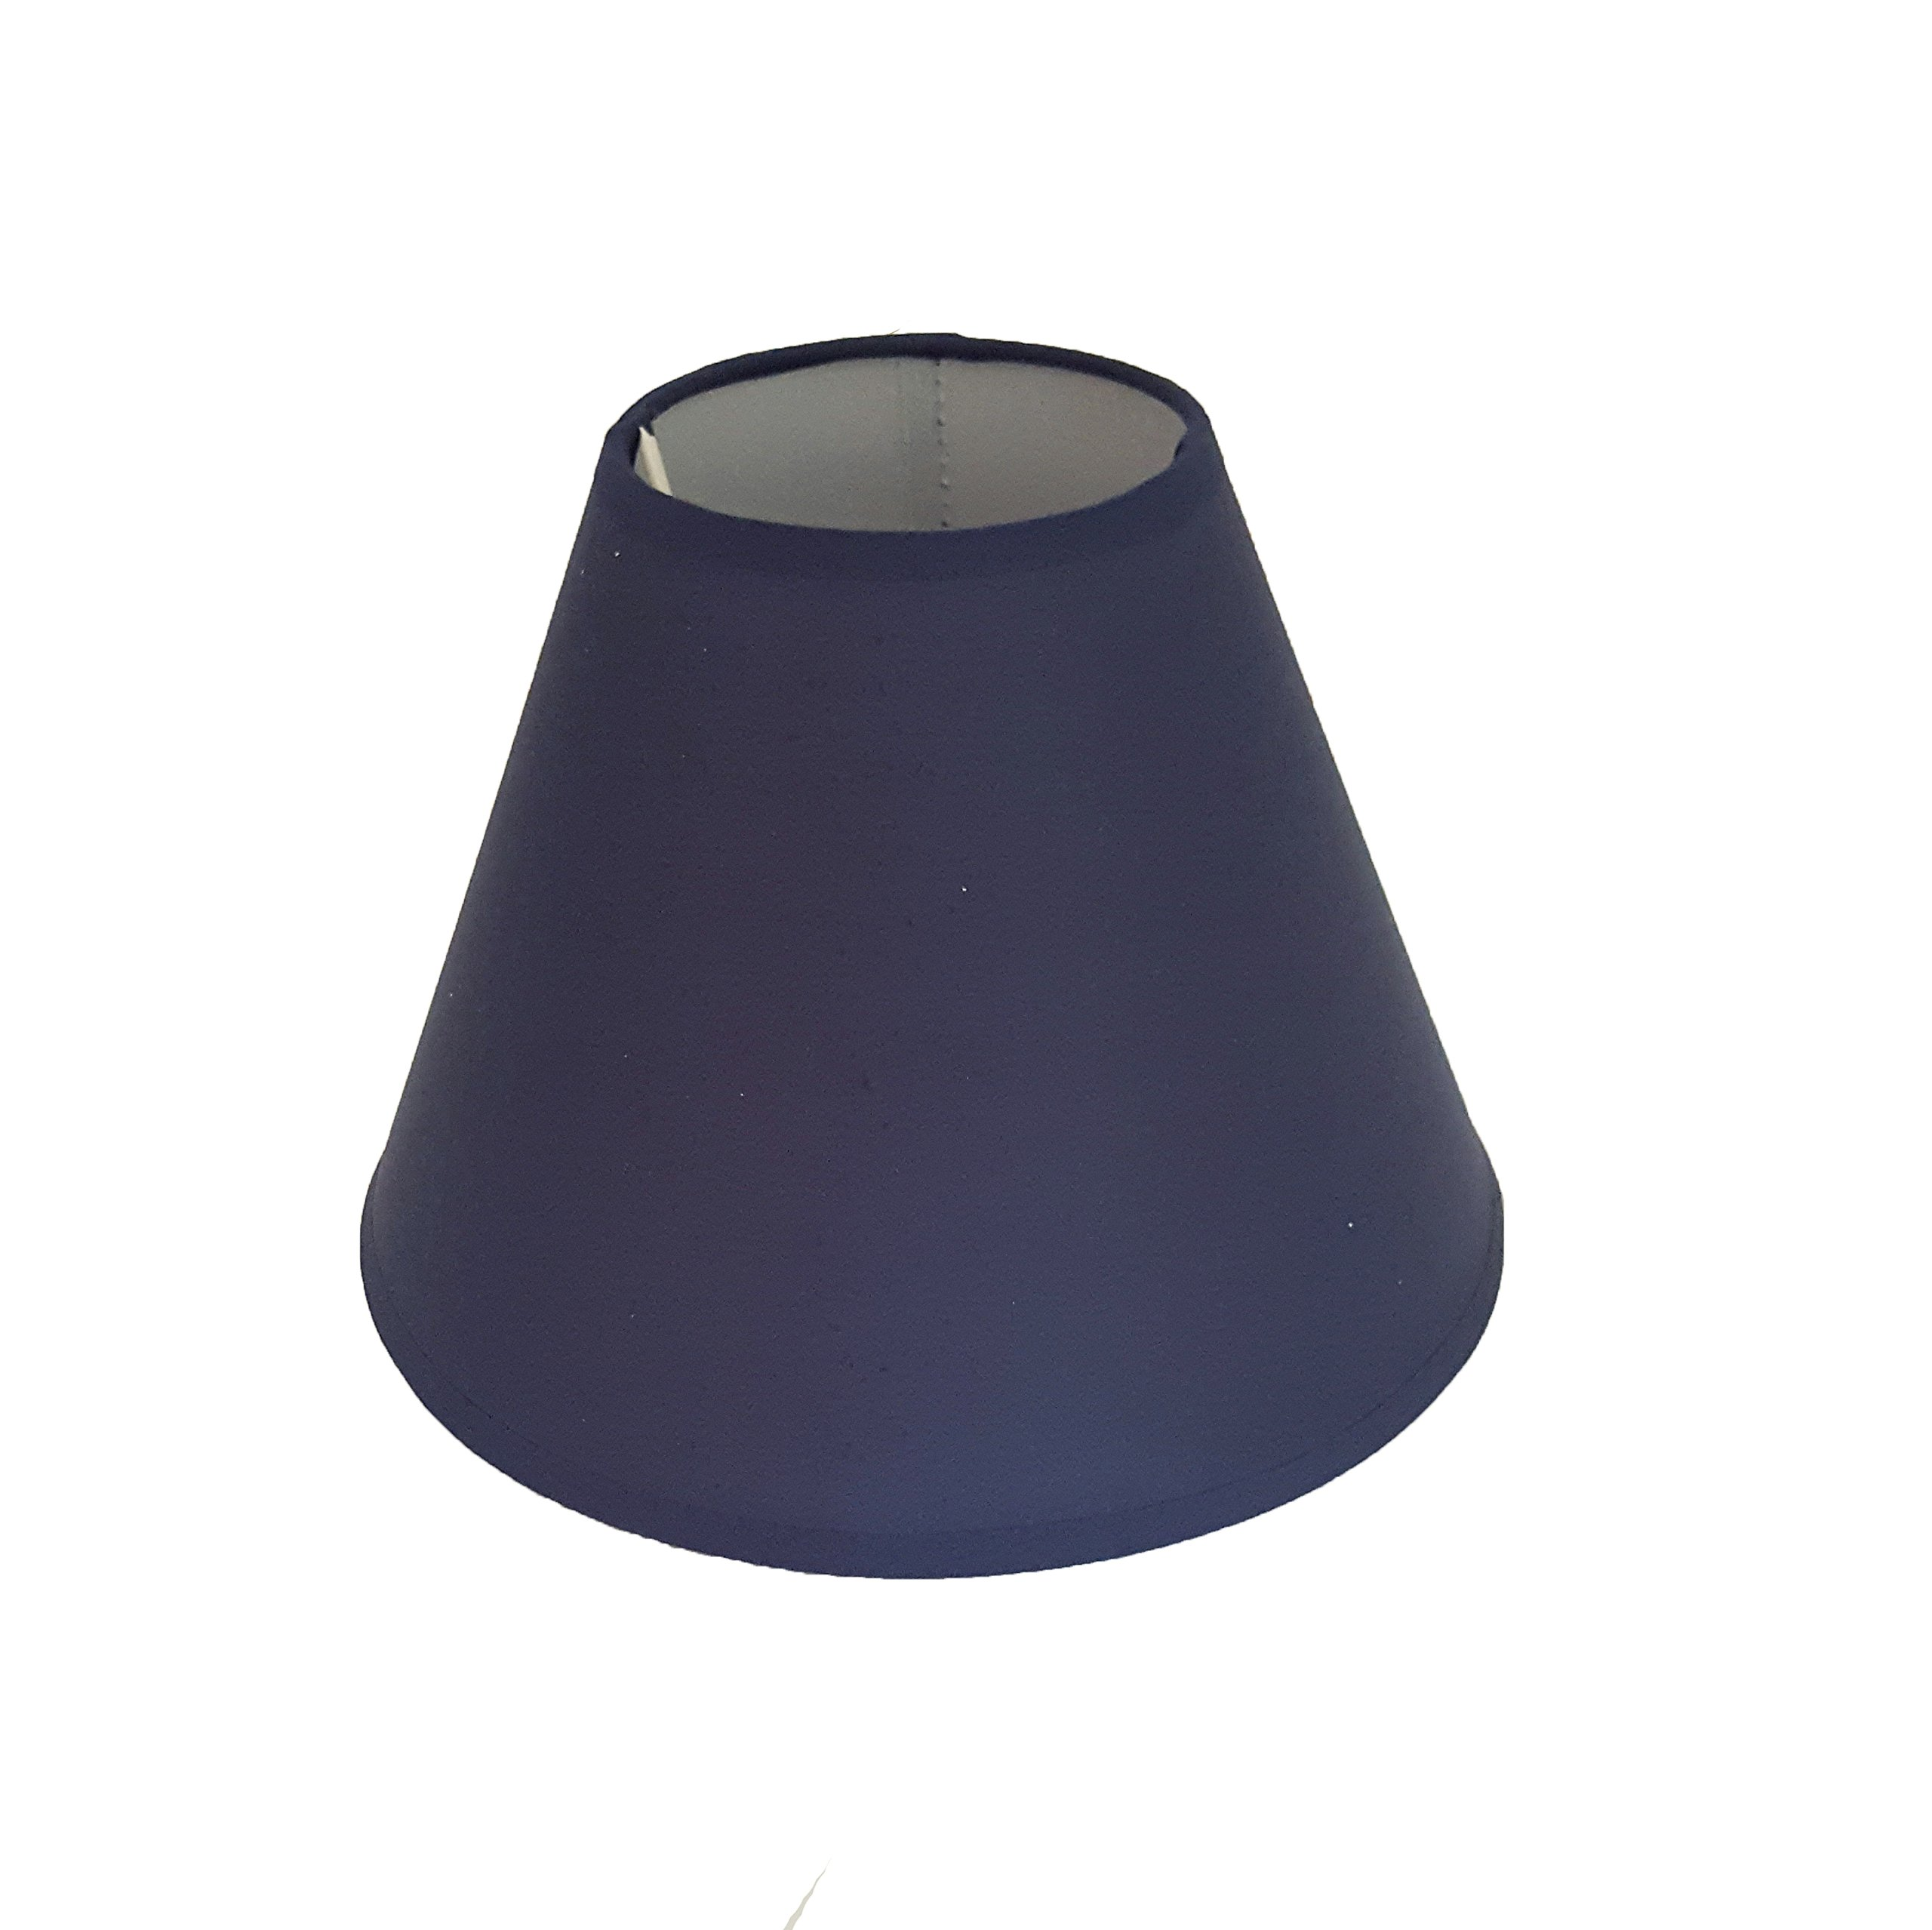 Blue table lamps amazon 9 coolie ceiling table lamp shade black cream lt blue lt green navy peach red aloadofball Gallery